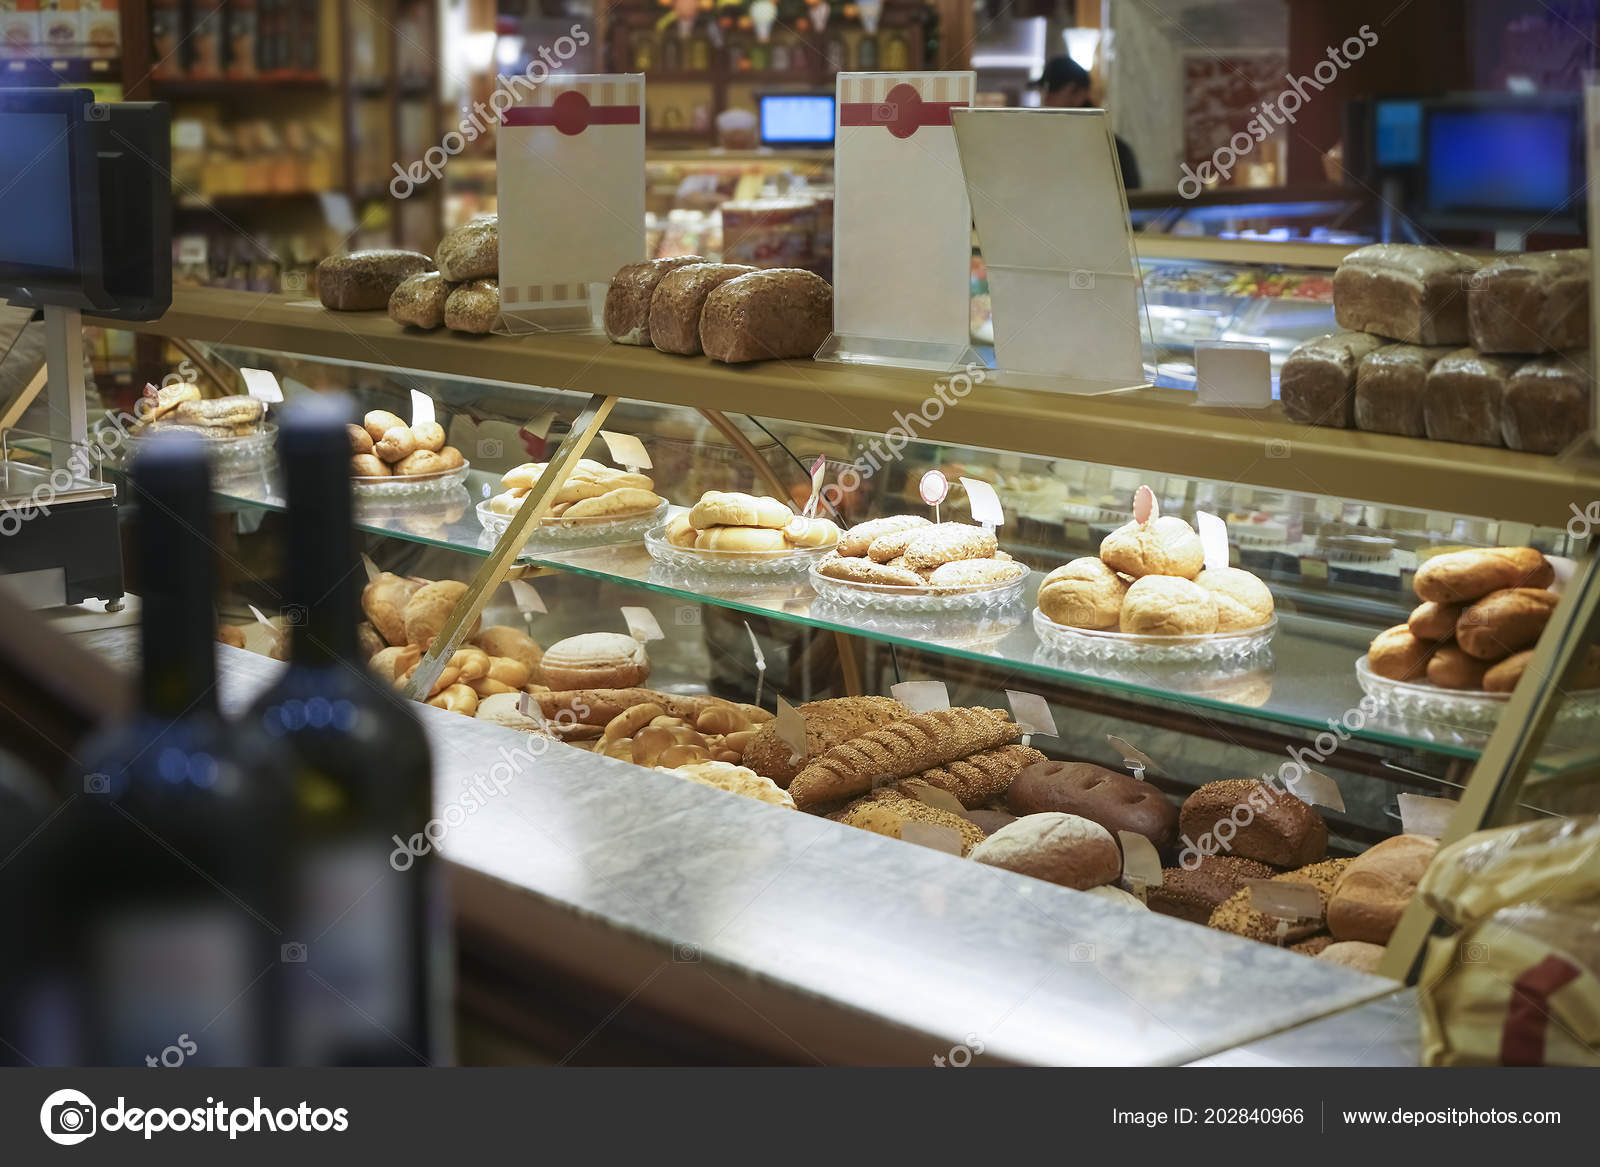 Cafe Bakery Display Case Pastries Display Light Reflection Glass Bakery Stock Photo Image By Borjomi88 202840966